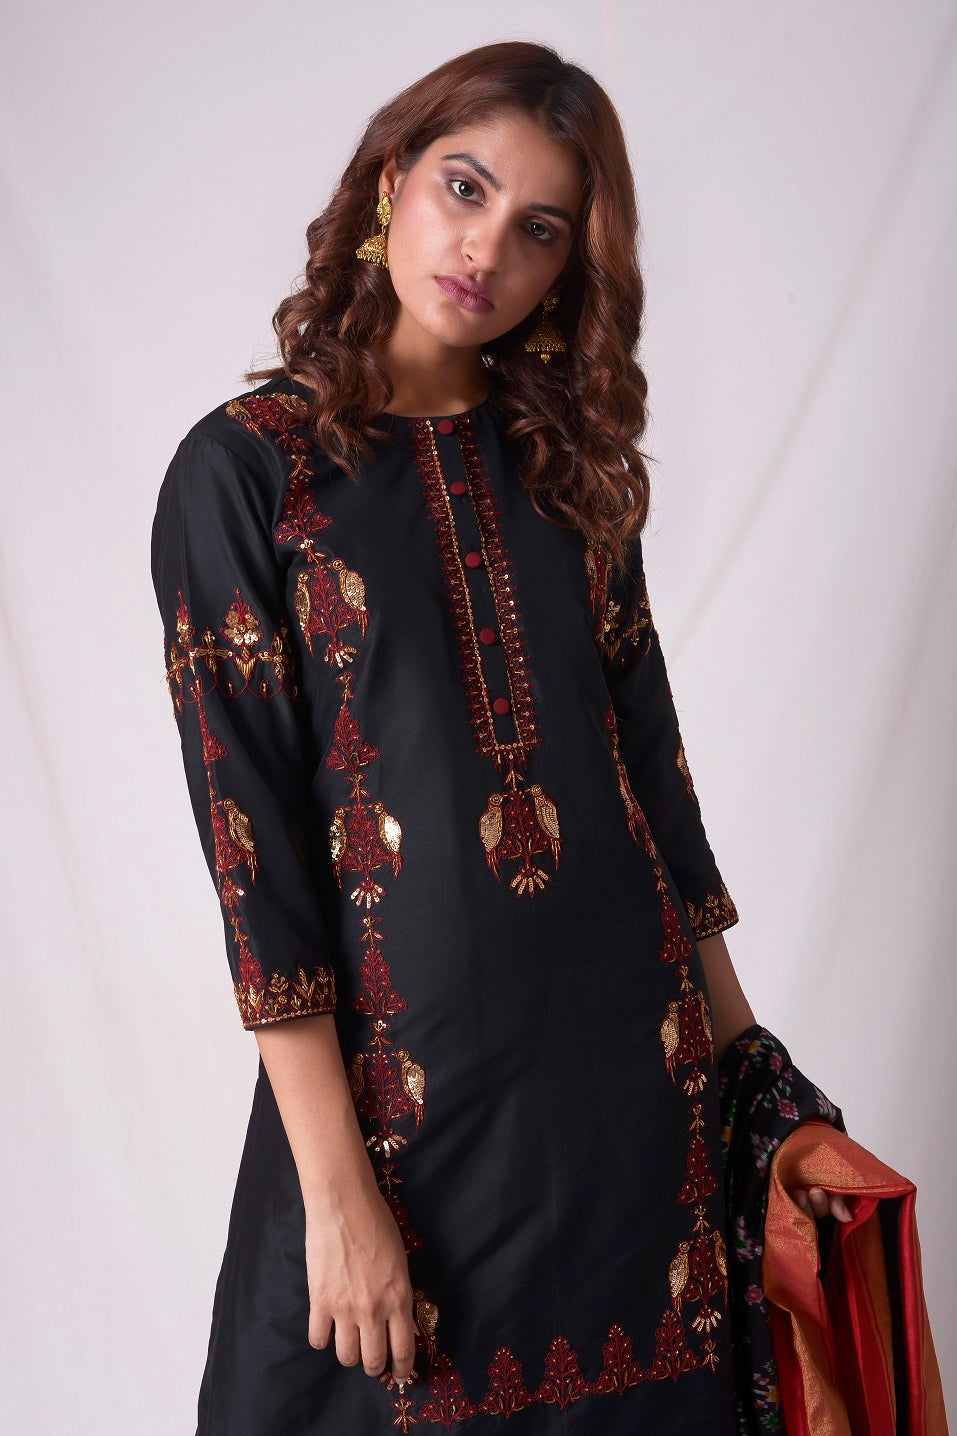 Buy black cotton silk suit online in USA. Suit has simple red  work. Be the talk of parties and weddings with exquisite designer gowns, Indian suits, Anarkali dresses, Indowestern dresses from Pure Elegance Indian clothing store in USA.Shop online now.-close up